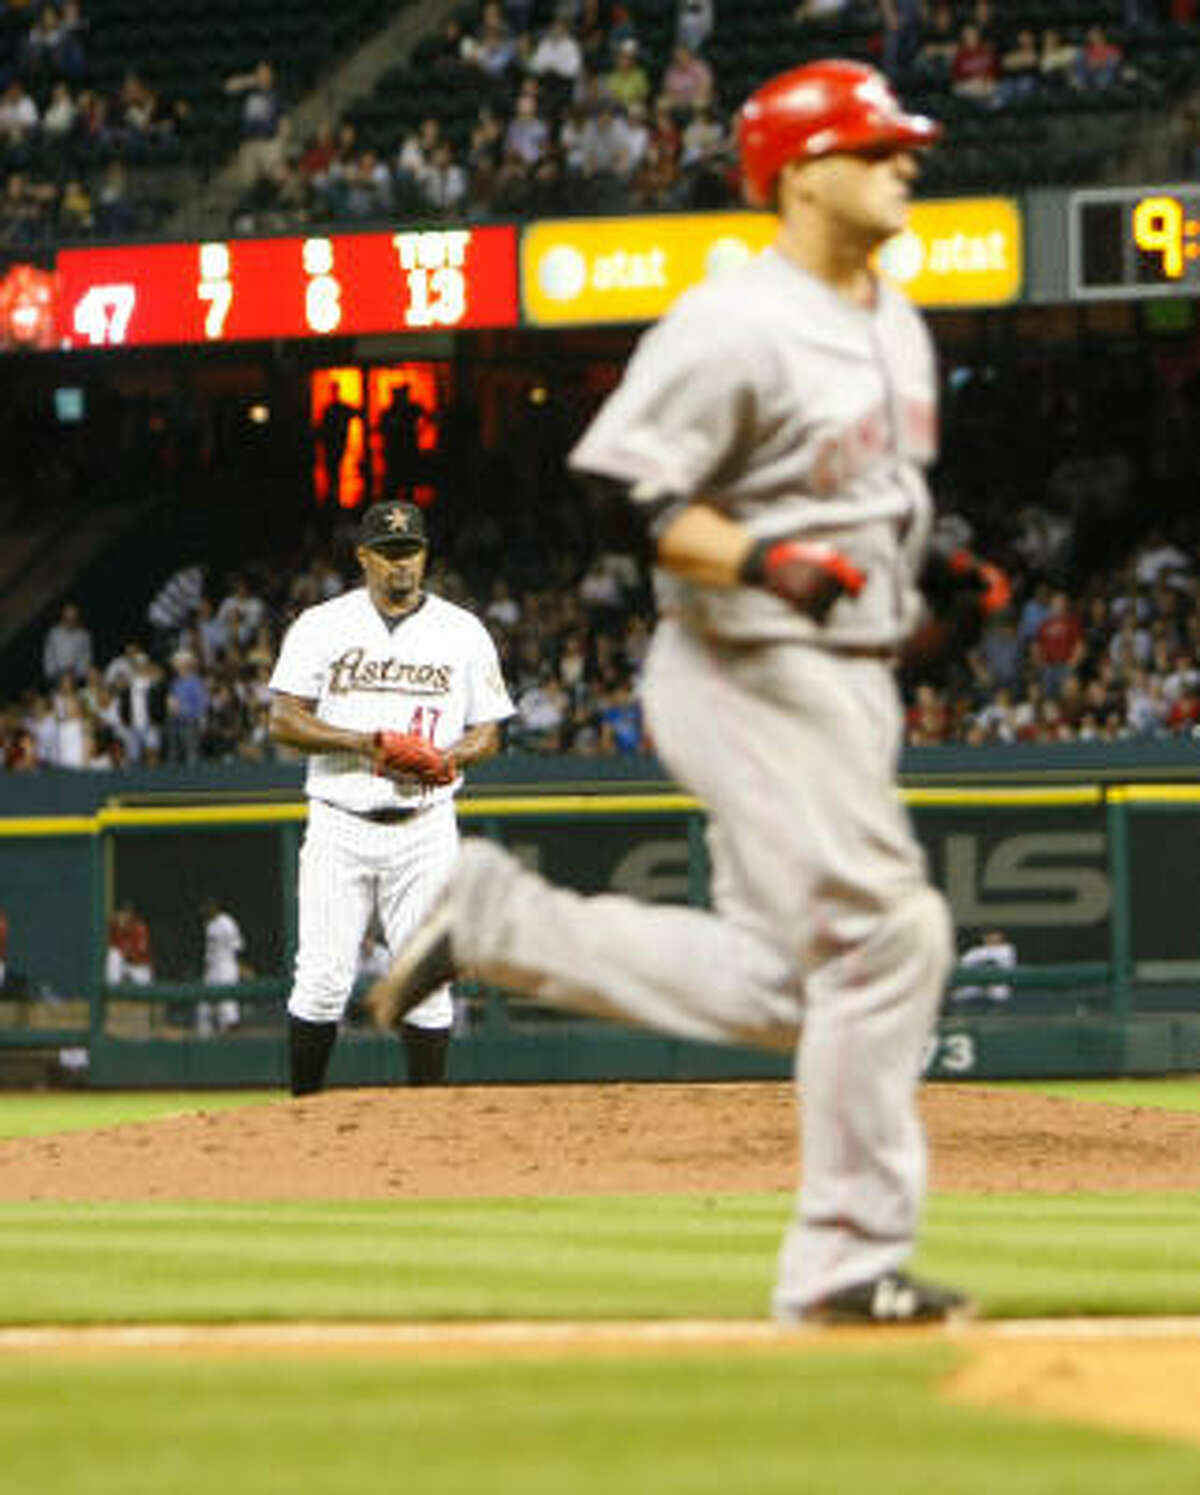 A dejected Jose Valverde, rear, watches Cincinnati Reds catcher Ramon Hernandez sprint home after hitting a two-run homer in the ninth inning.